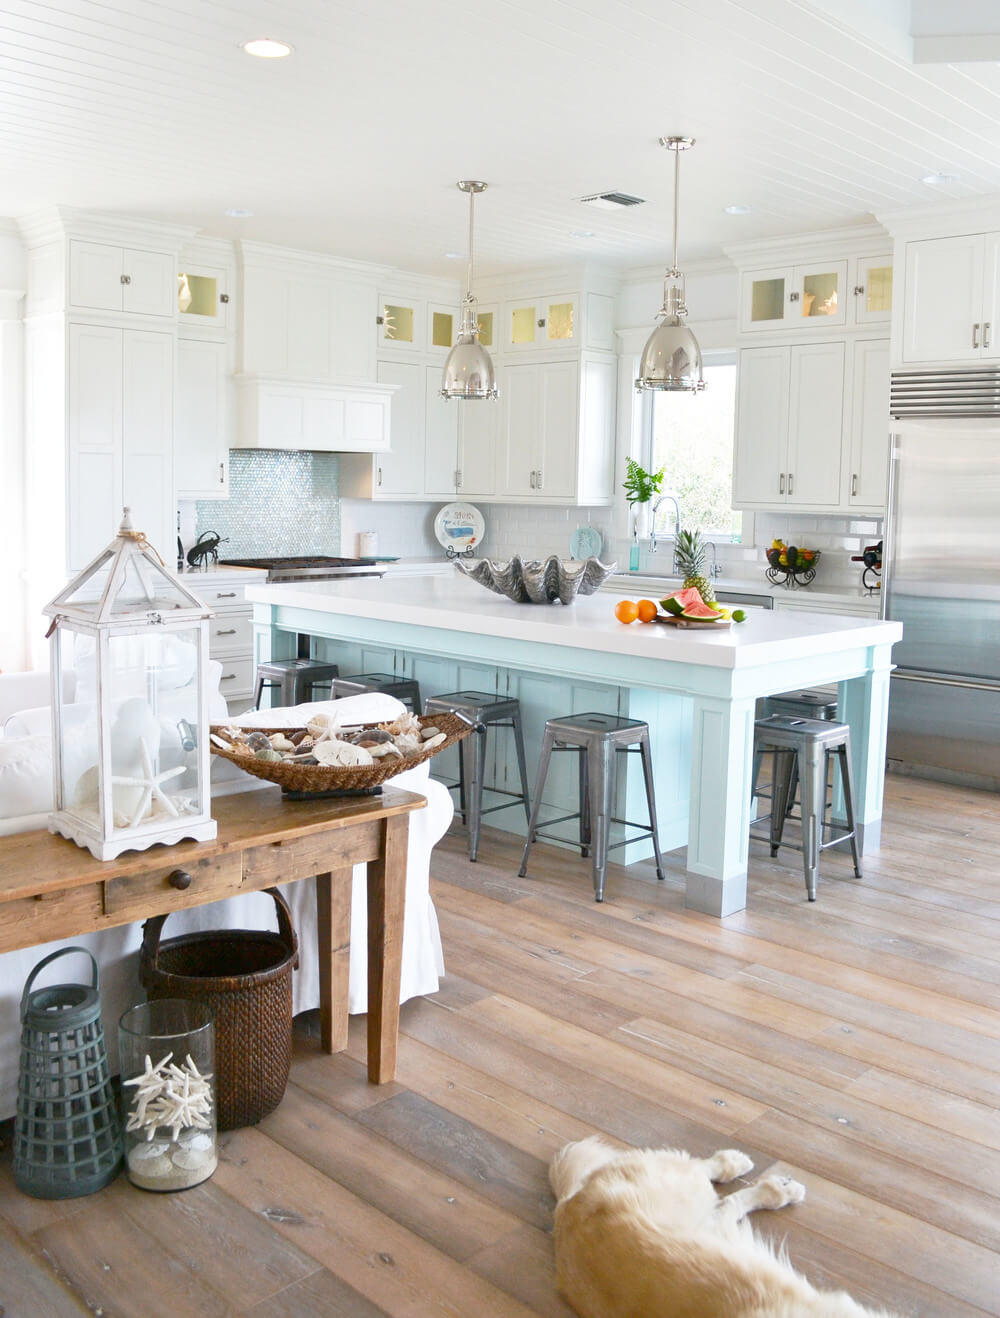 Consider Accenting Unexpected Areas in Your Kitchen